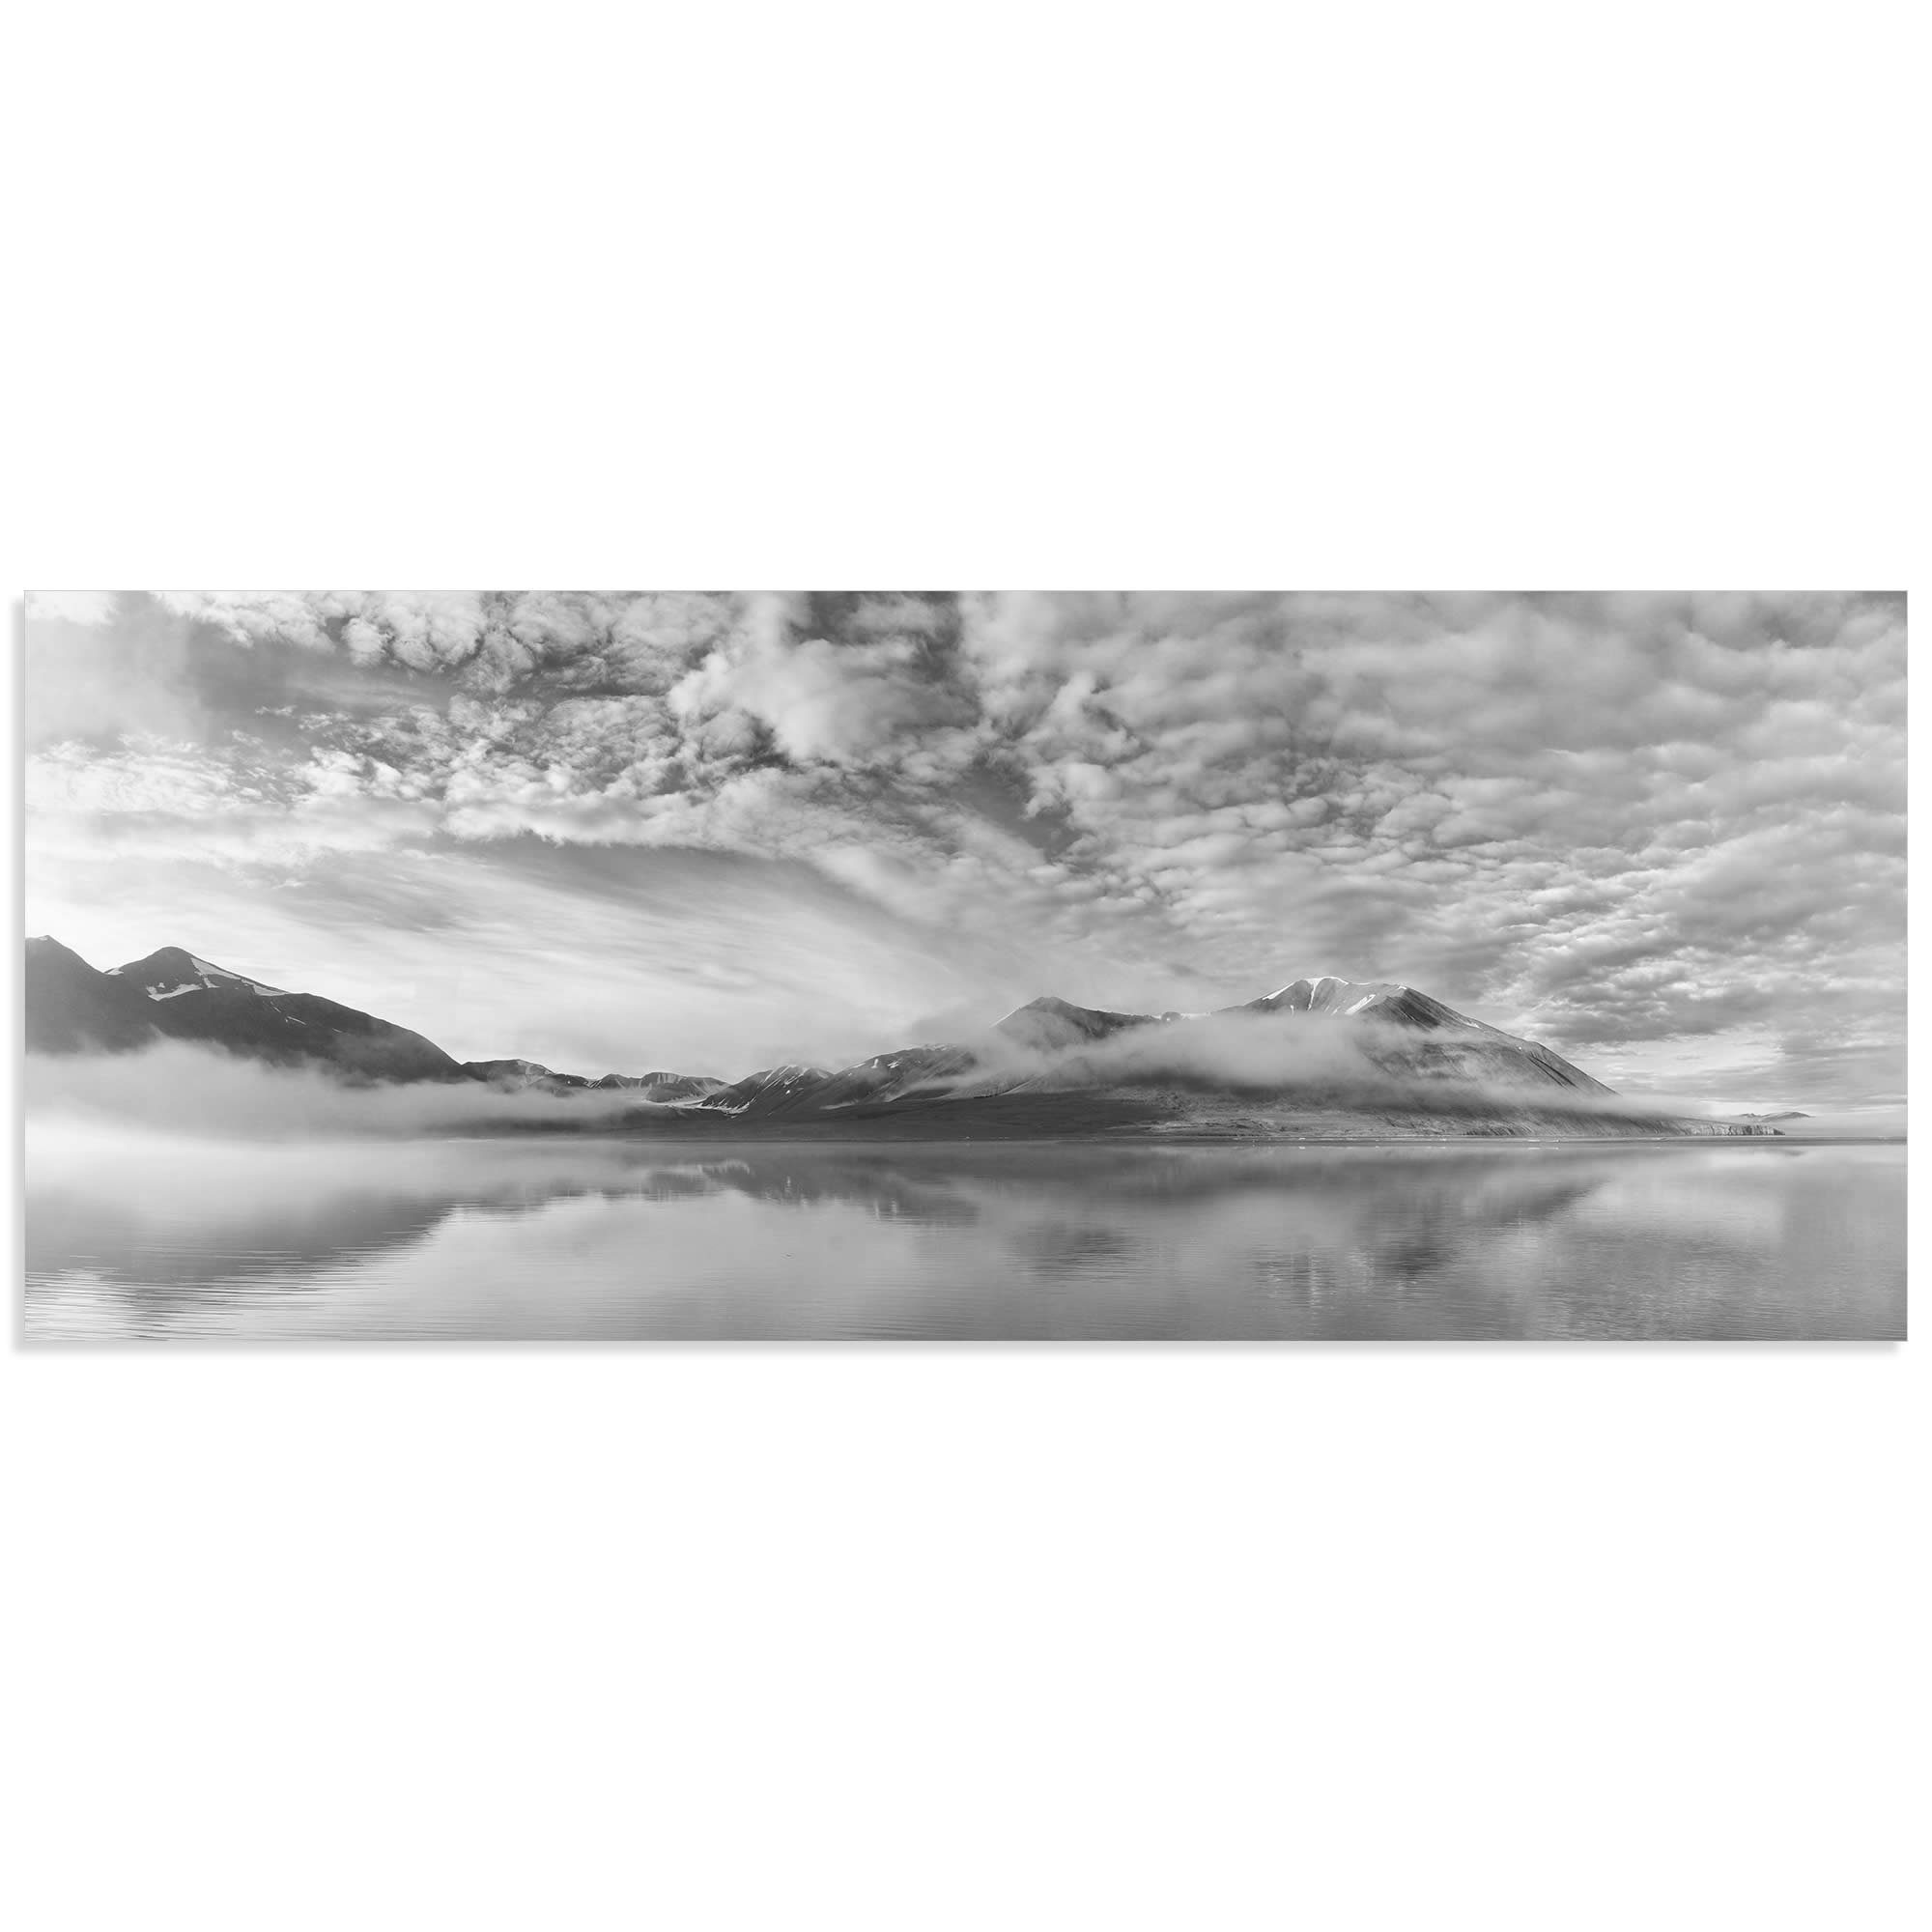 Morning Mist by Marloes van Pareren - Black and White Photography on Metal or Acrylic